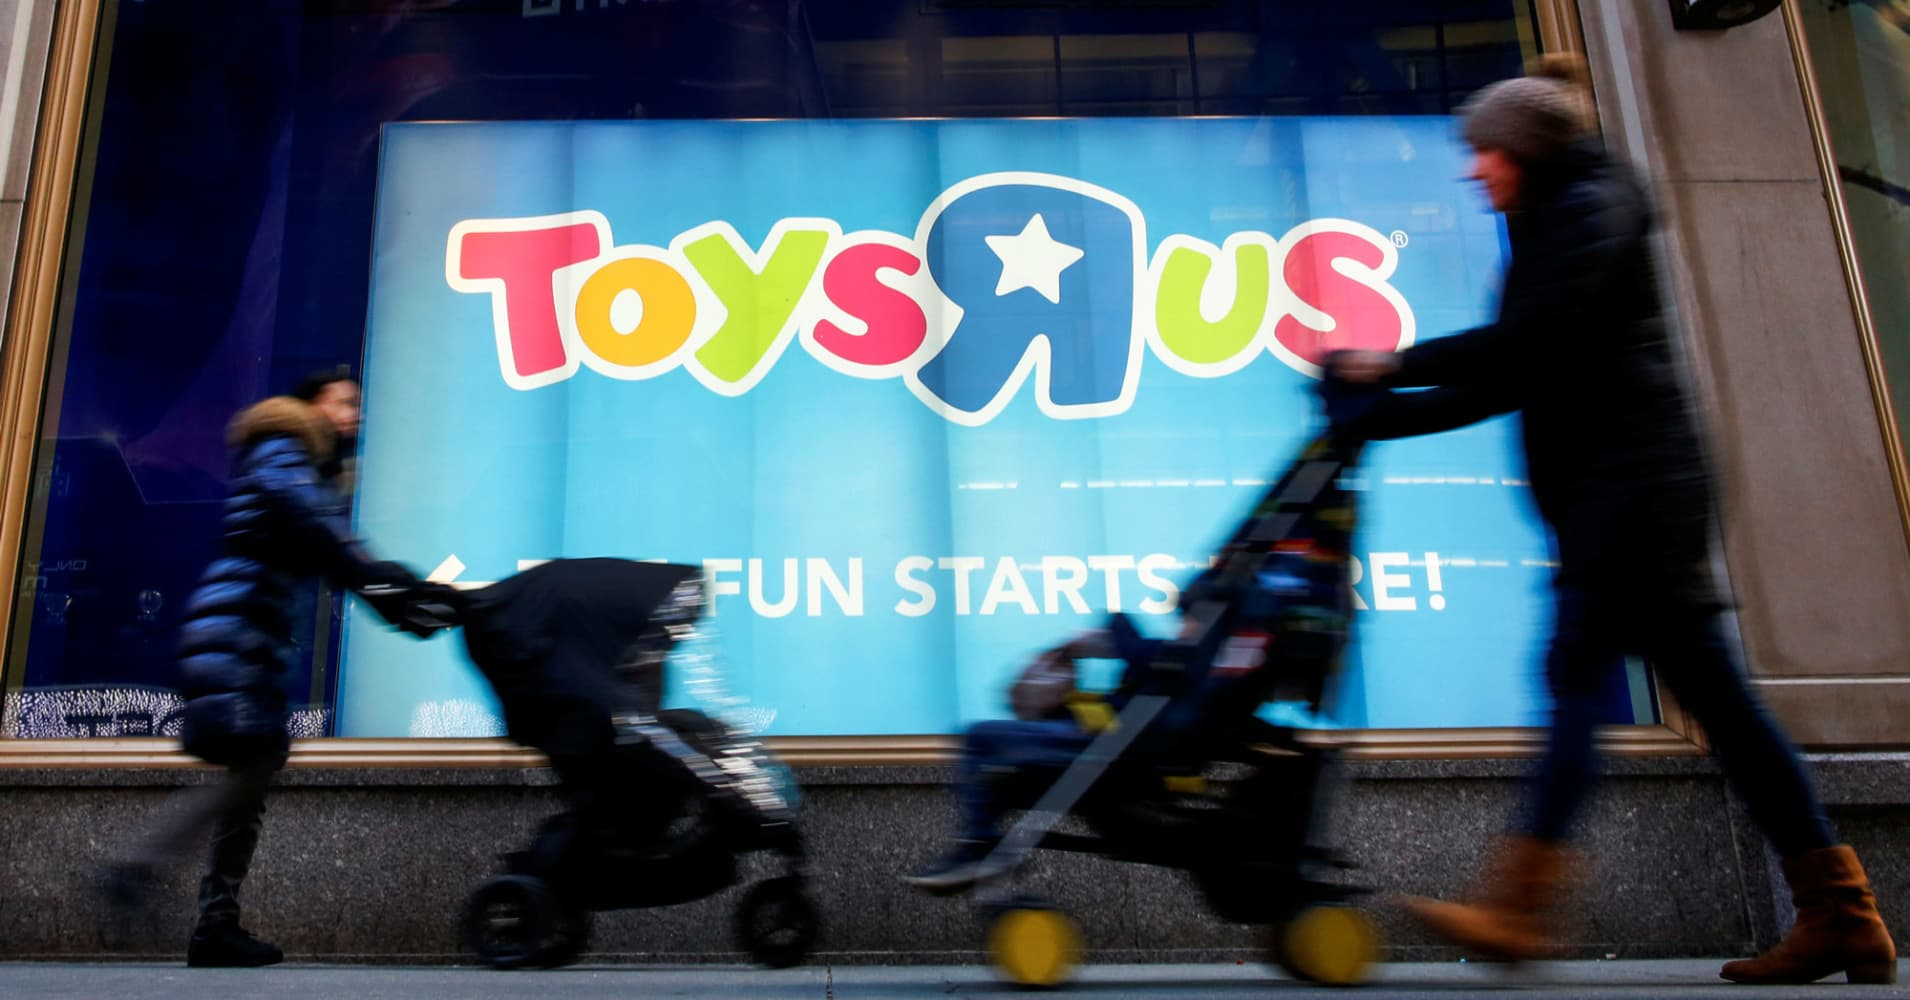 Toys R Us built a kingdom and the world's biggest toy store. On Friday, its stores close for good.